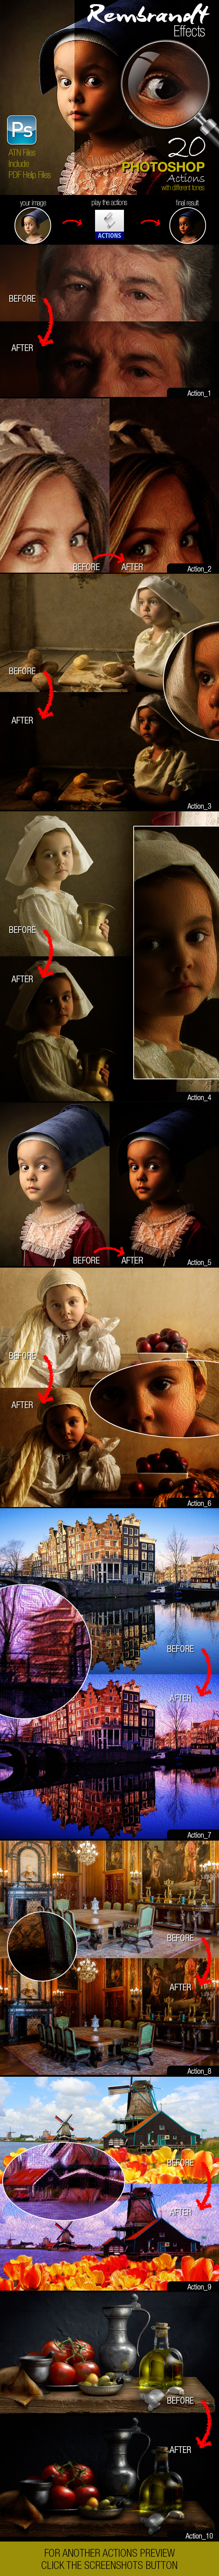 Rembrandt Effects - Photo Effects Actions